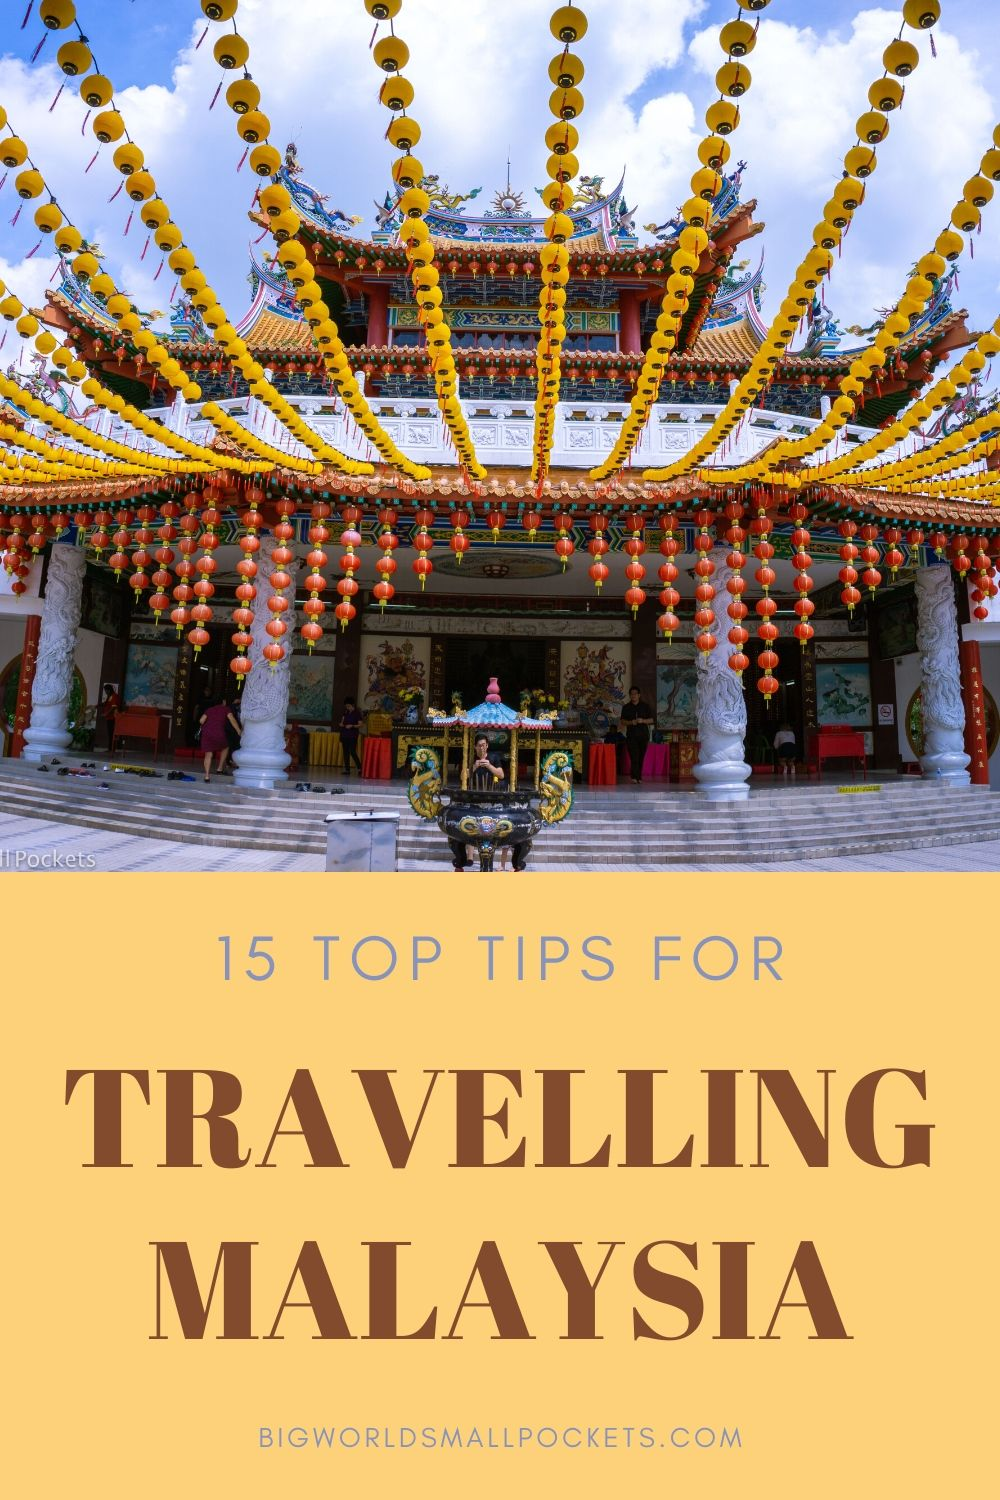 15 Top Tips for Travel in Malaysia